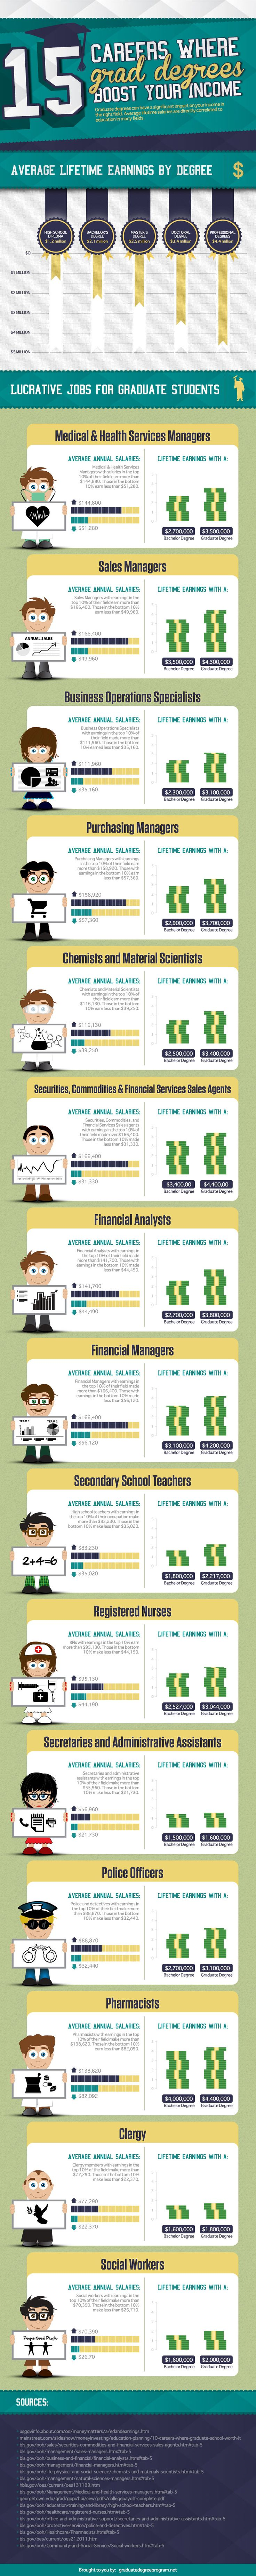 Graduate degrees can have a significant impact on your income in the right field. Average lifetime salaries are directly correlated to education in many fields.